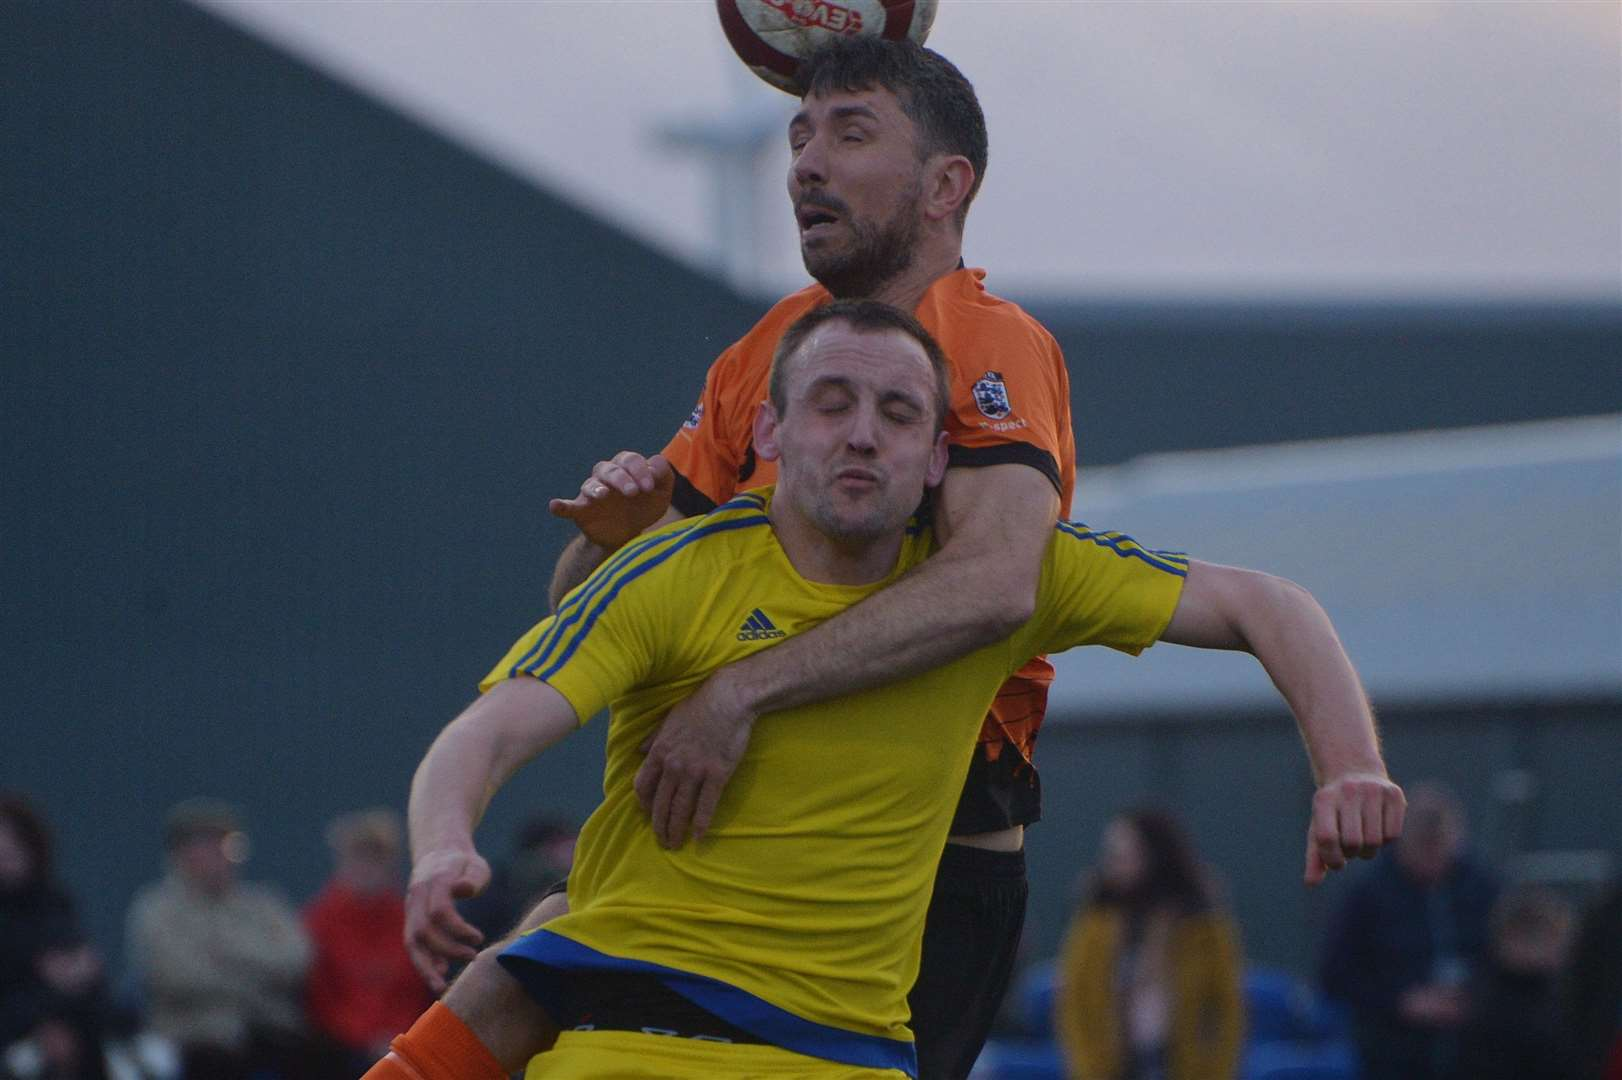 Flowserve's Rhys Lewis climbs all over a Selston player to reach a header. 291218DC1-15. (6253168)